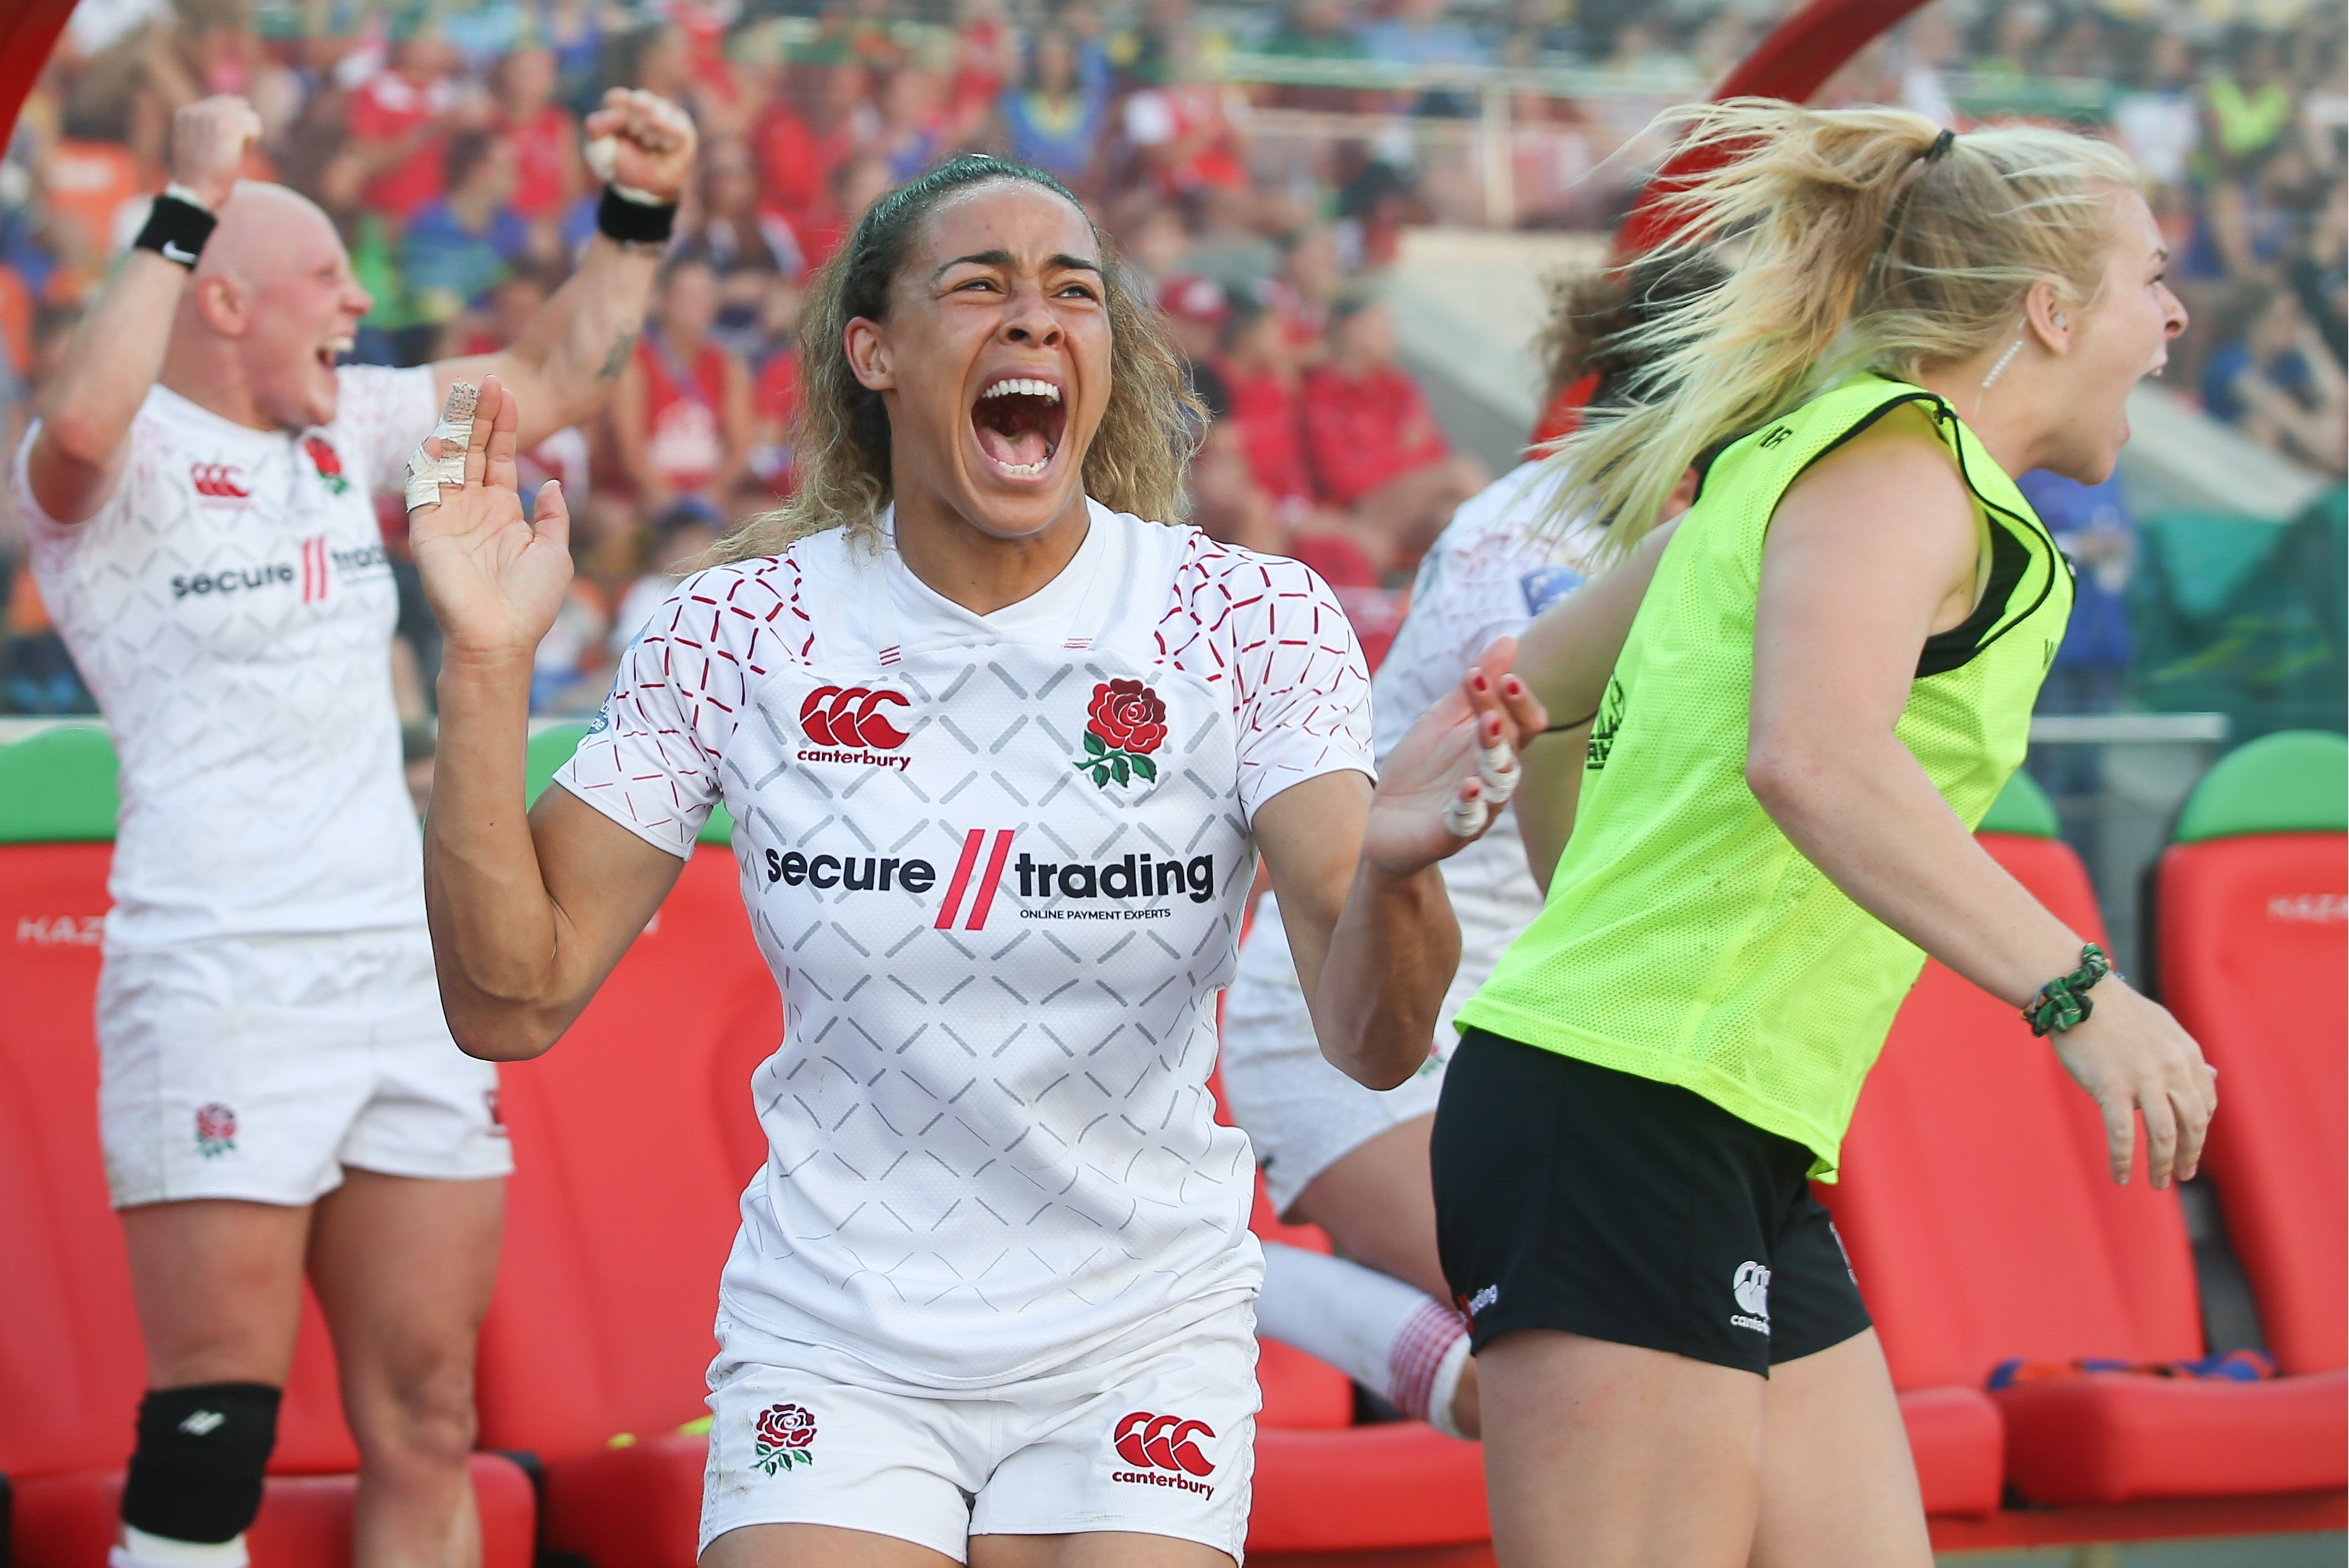 England rugby announce their New Zealand sevens squad that sees Kildunne and Gregson return from injury